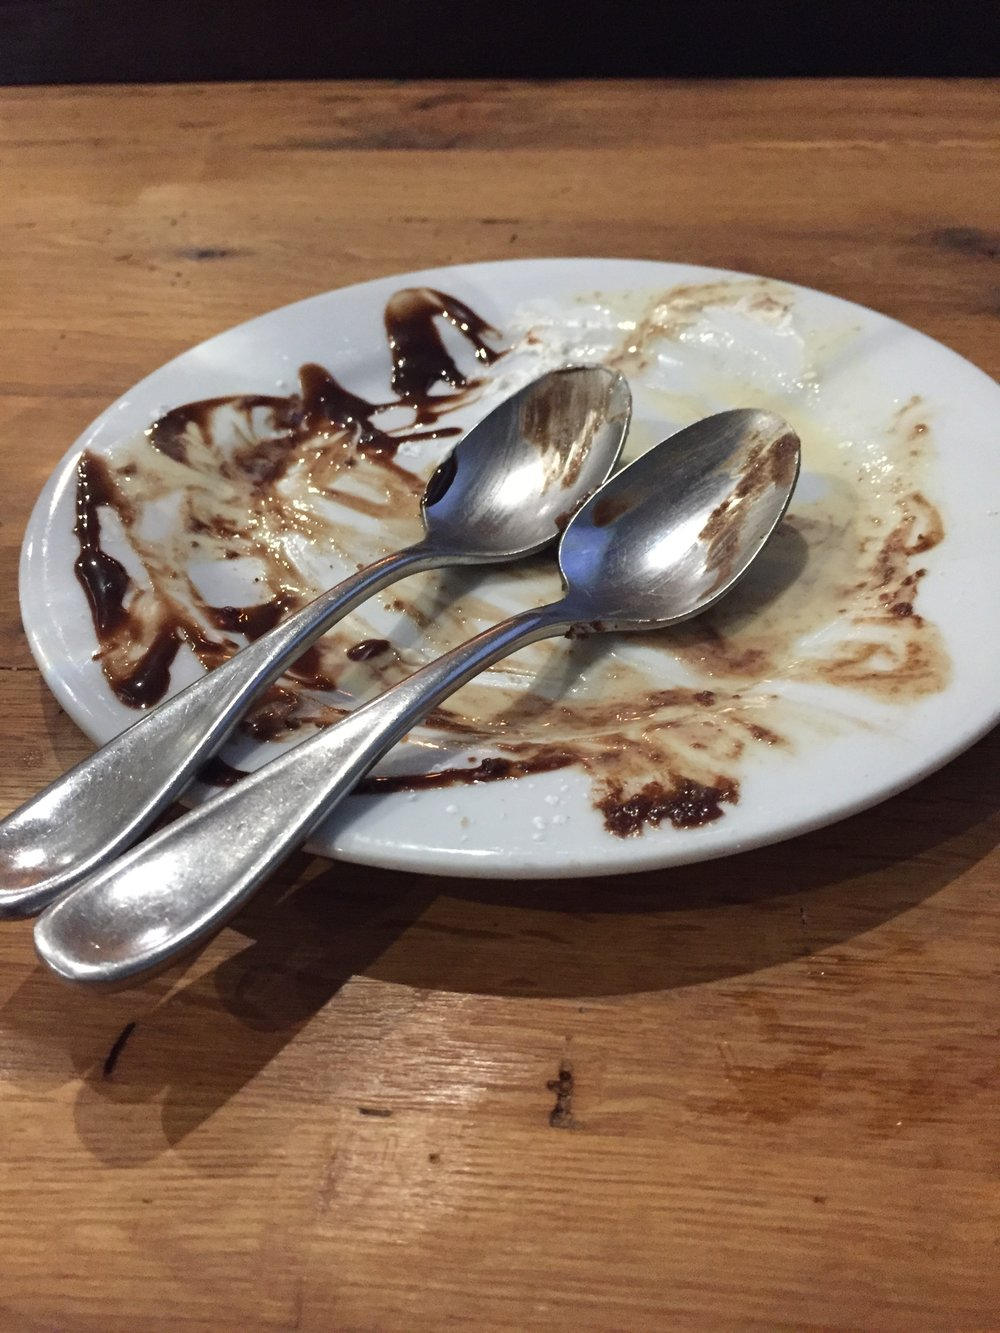 The sweet remains of our actual dessert.